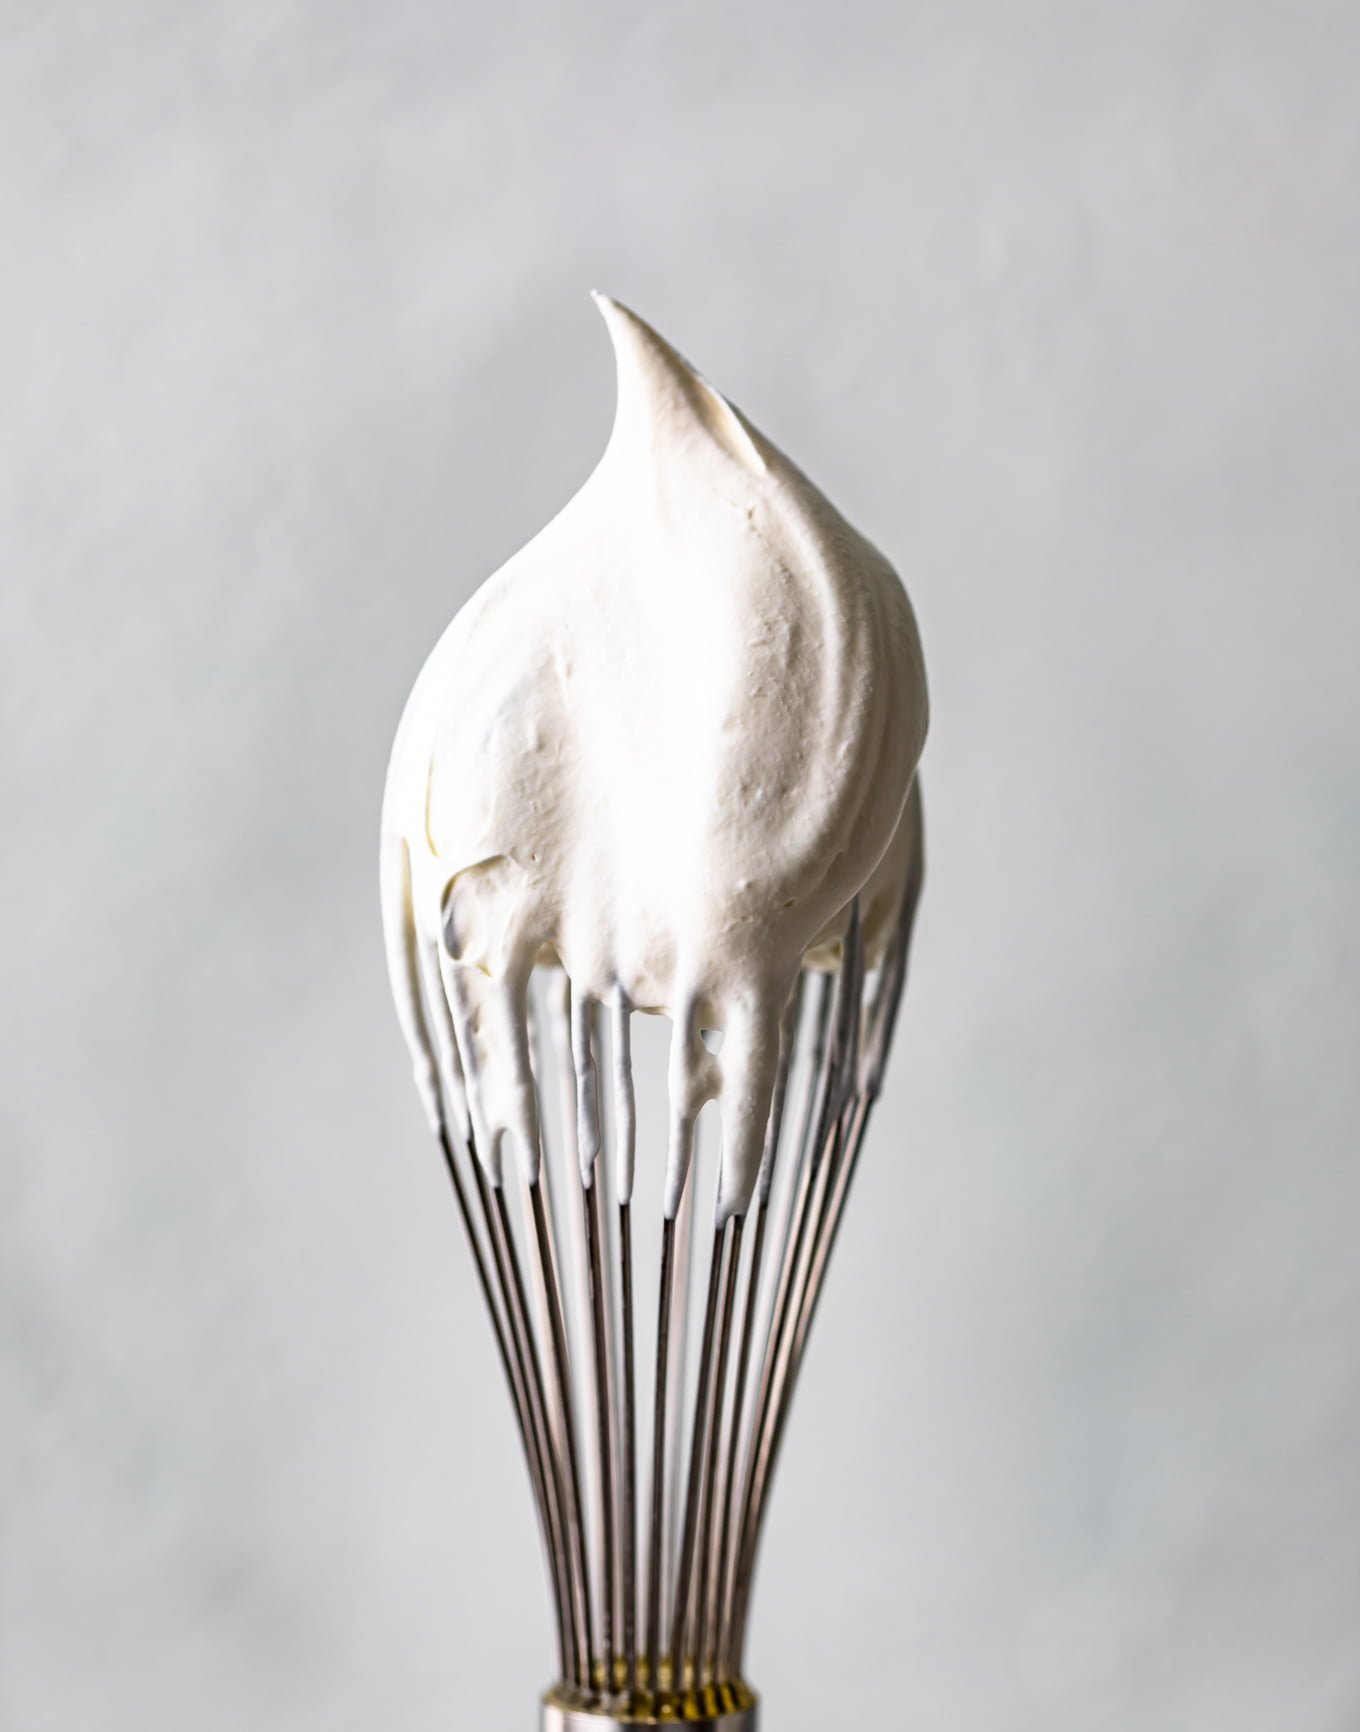 a whisk dipped in whipped cream